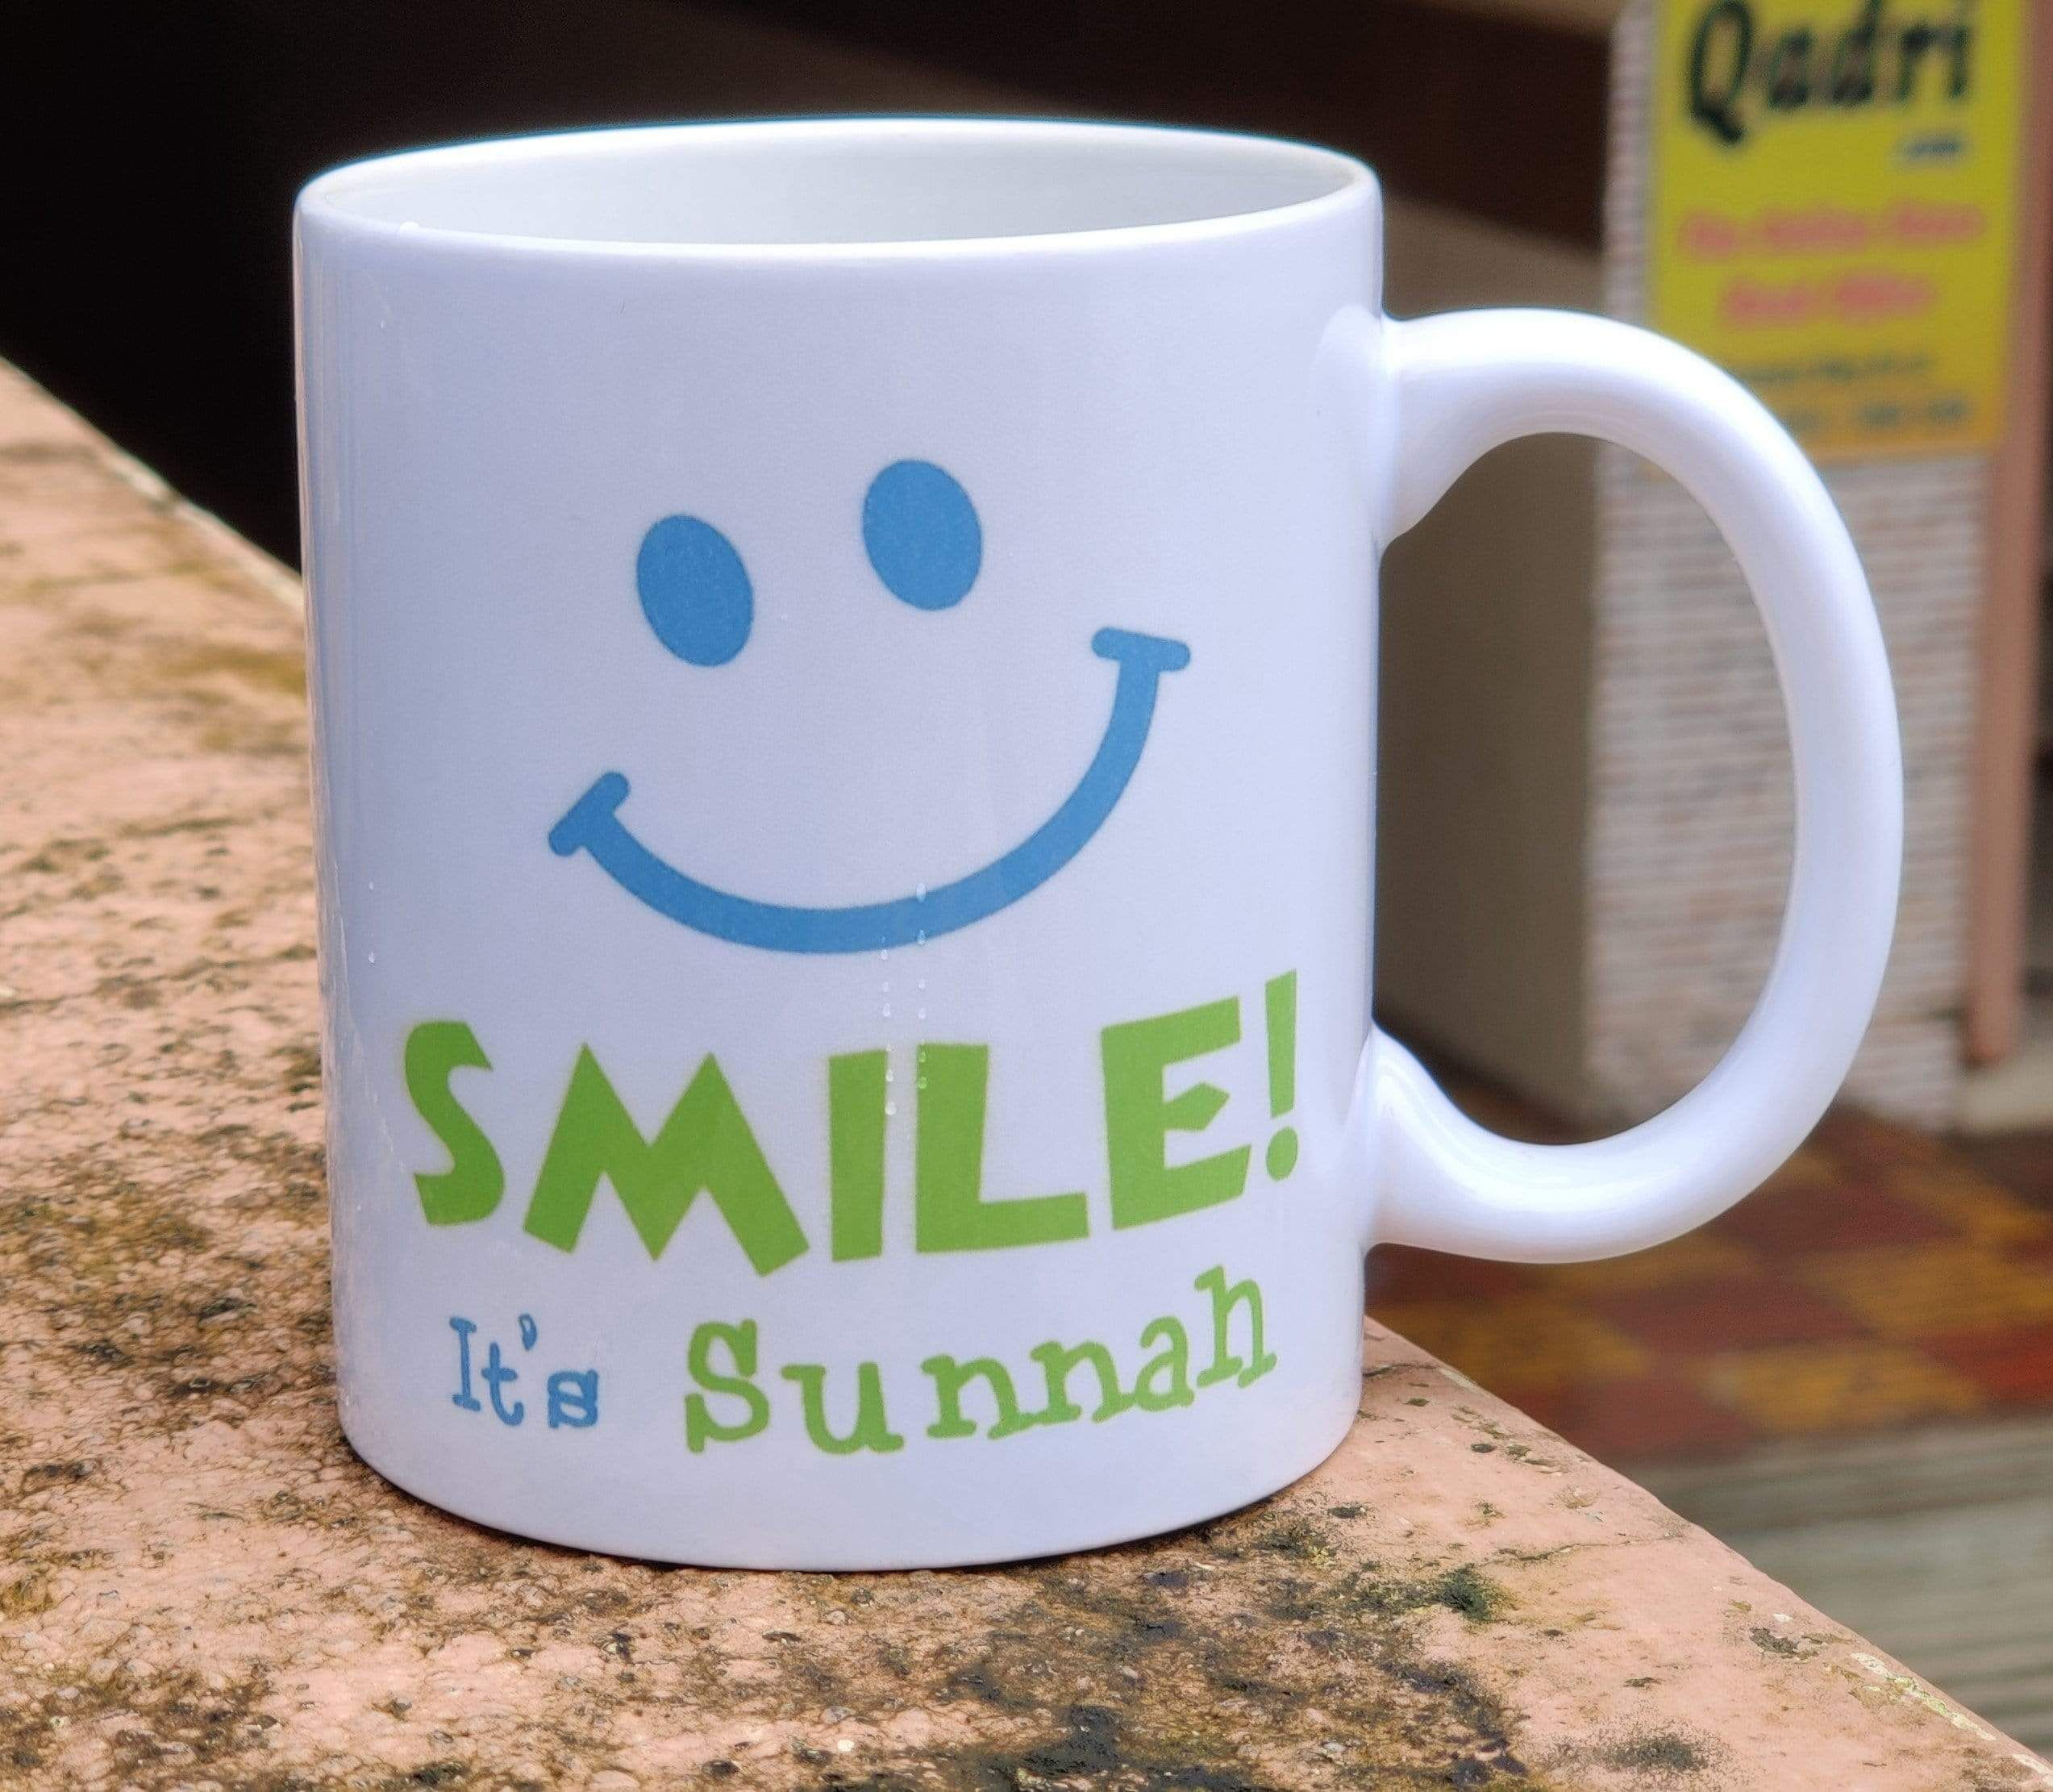 Smile Its Sunnah Islamic Tea Coffee Mug (With images